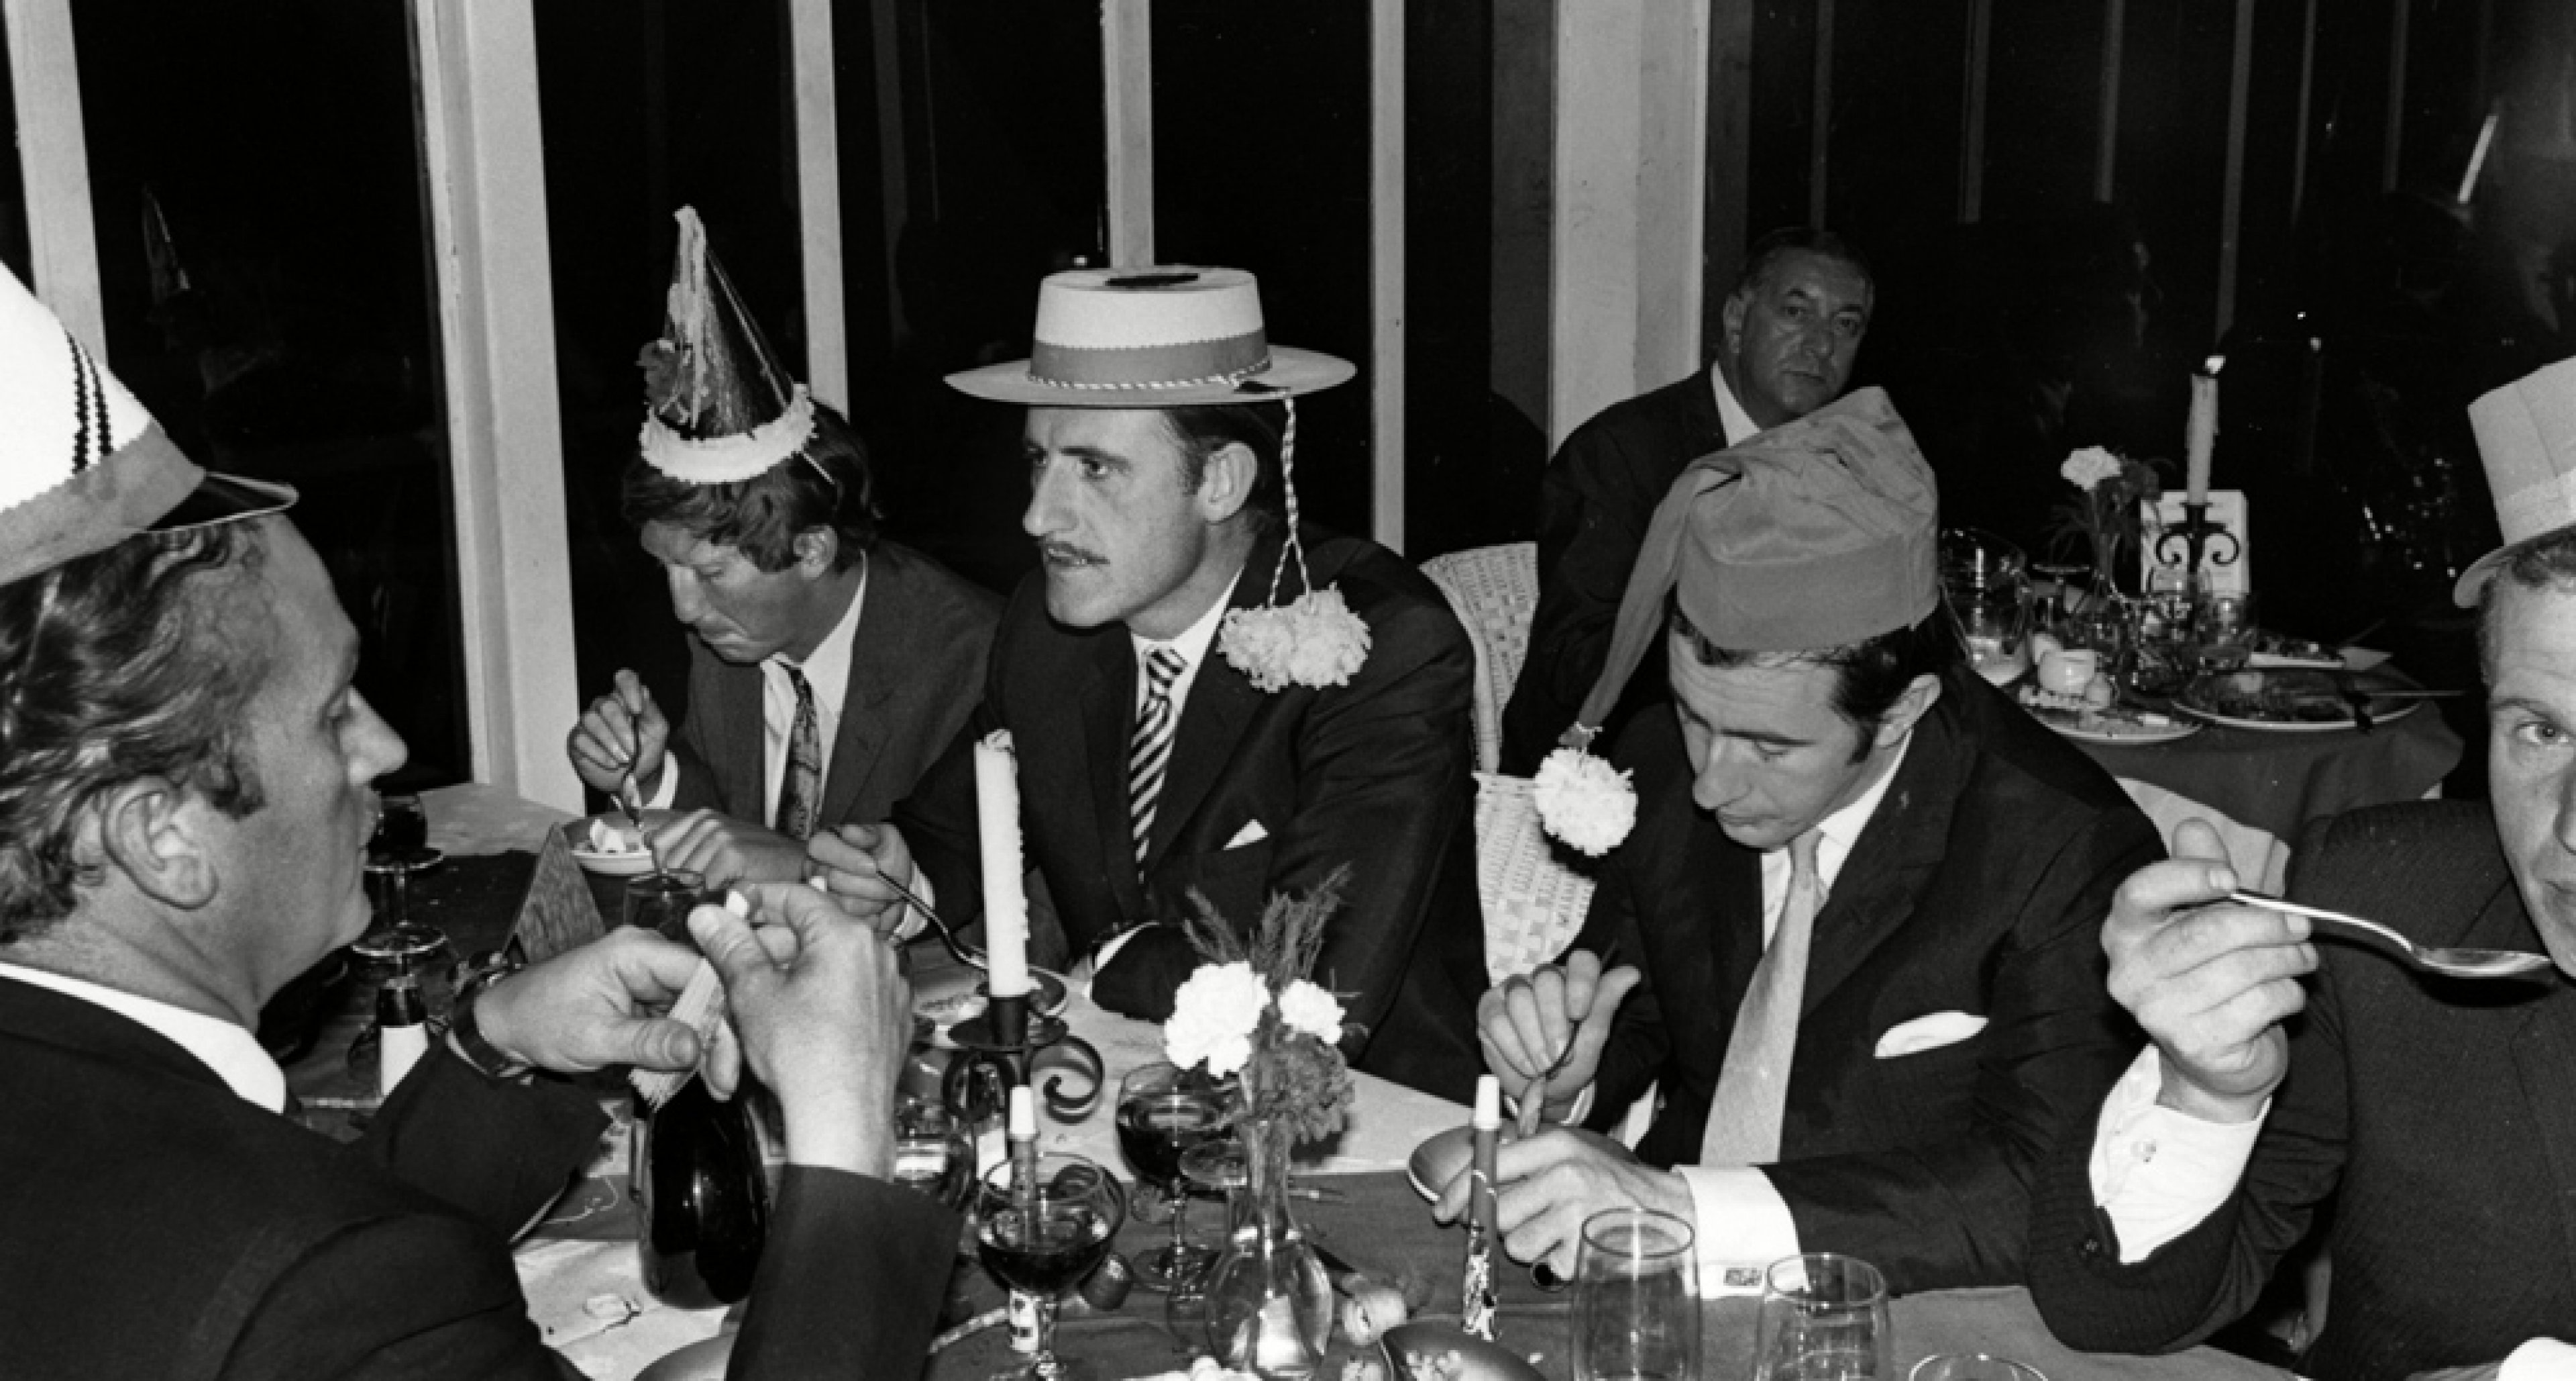 Kyalami, South Africa, 1968. Colin Chapman, Jochen Rindt, Graham Hill and Sir Jackie Stewart celebrate Christmas